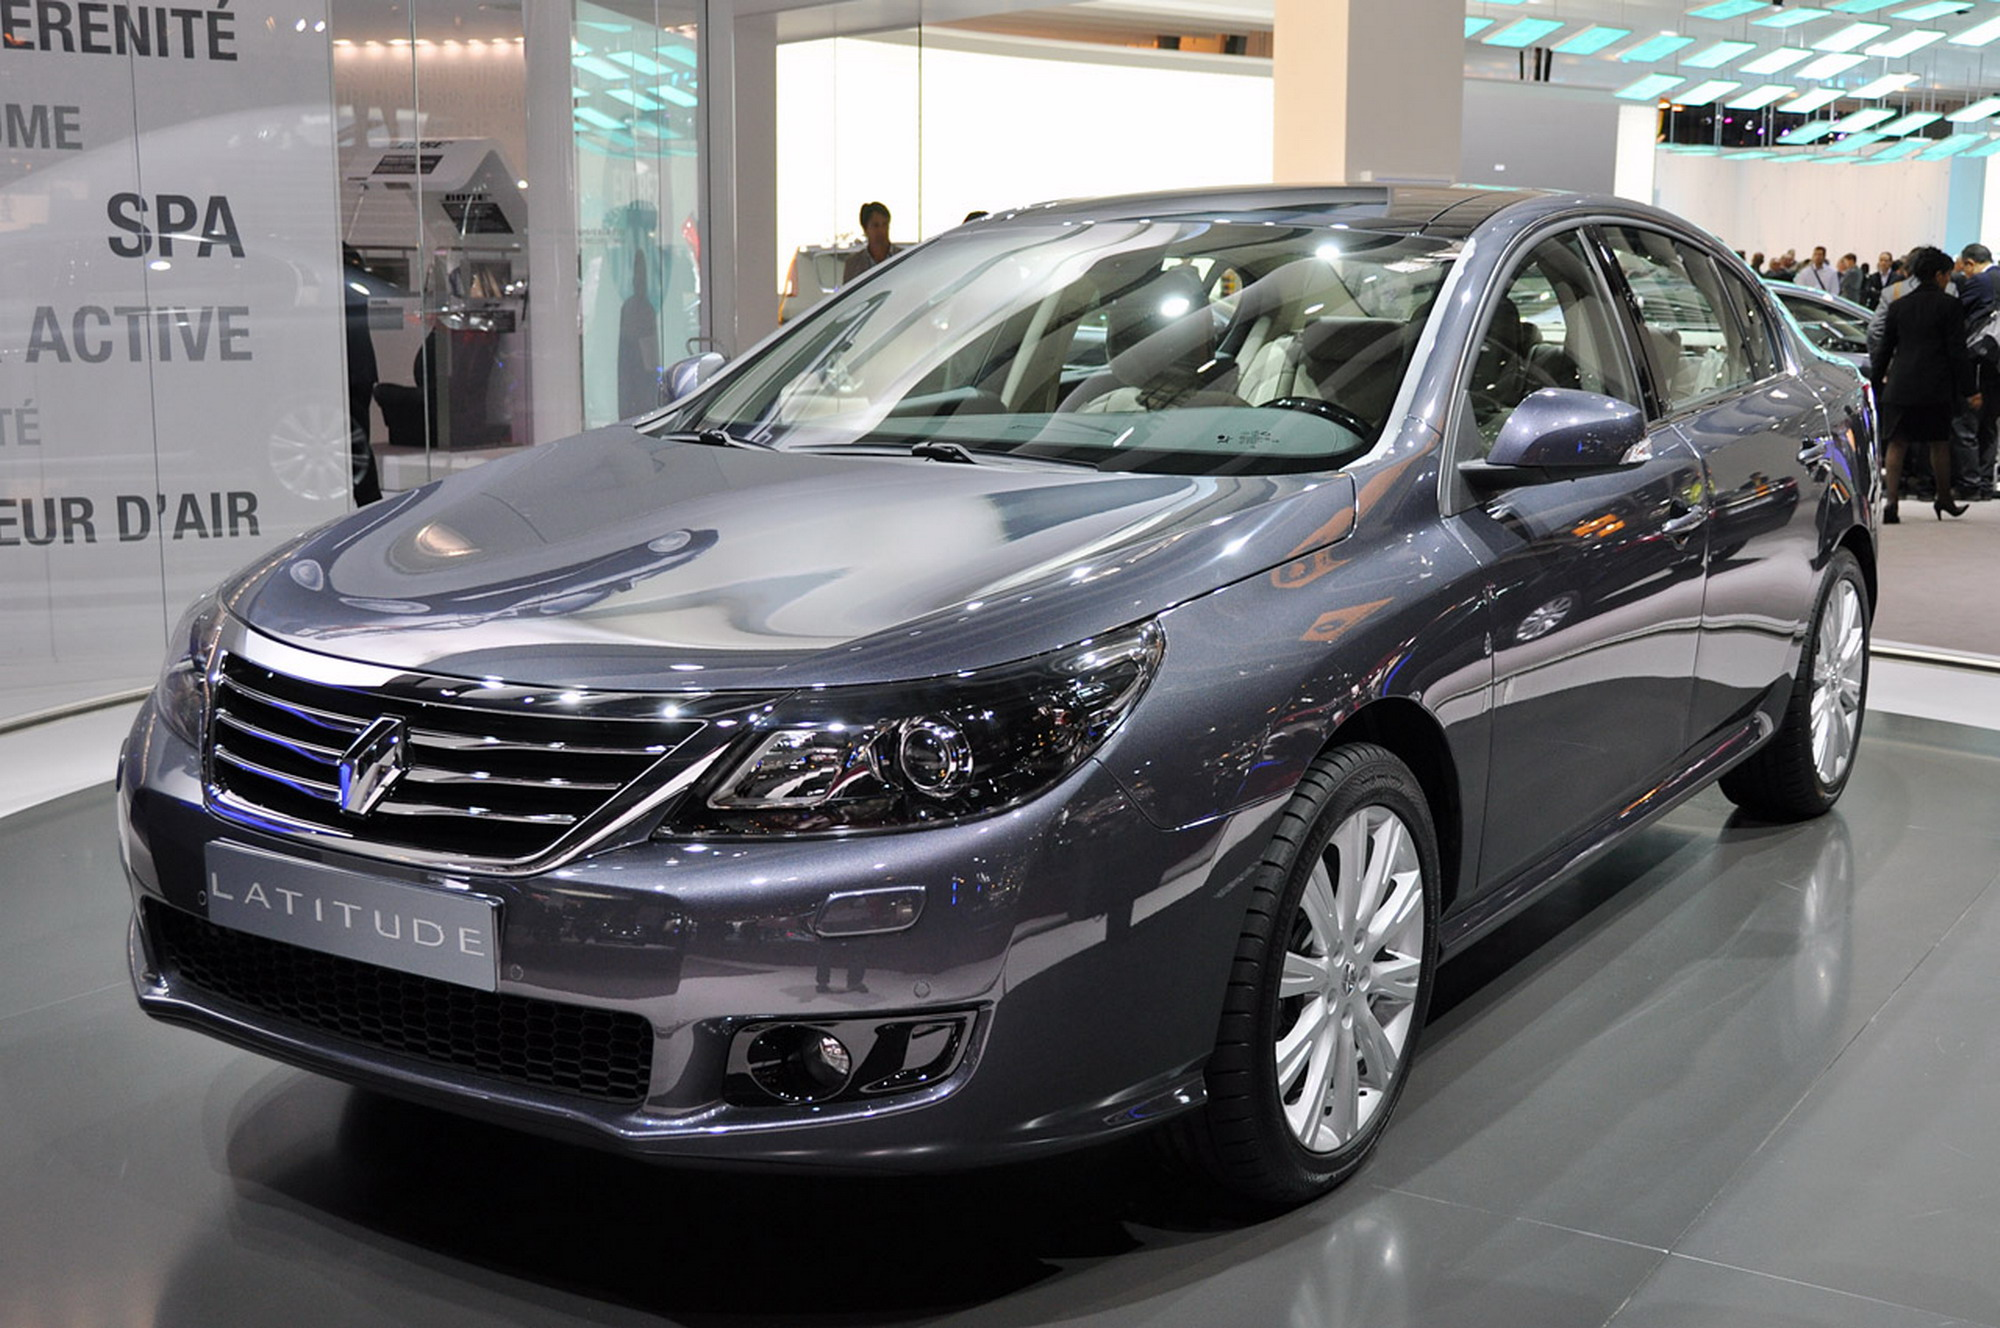 2011 renault latitude specifications reviews photos